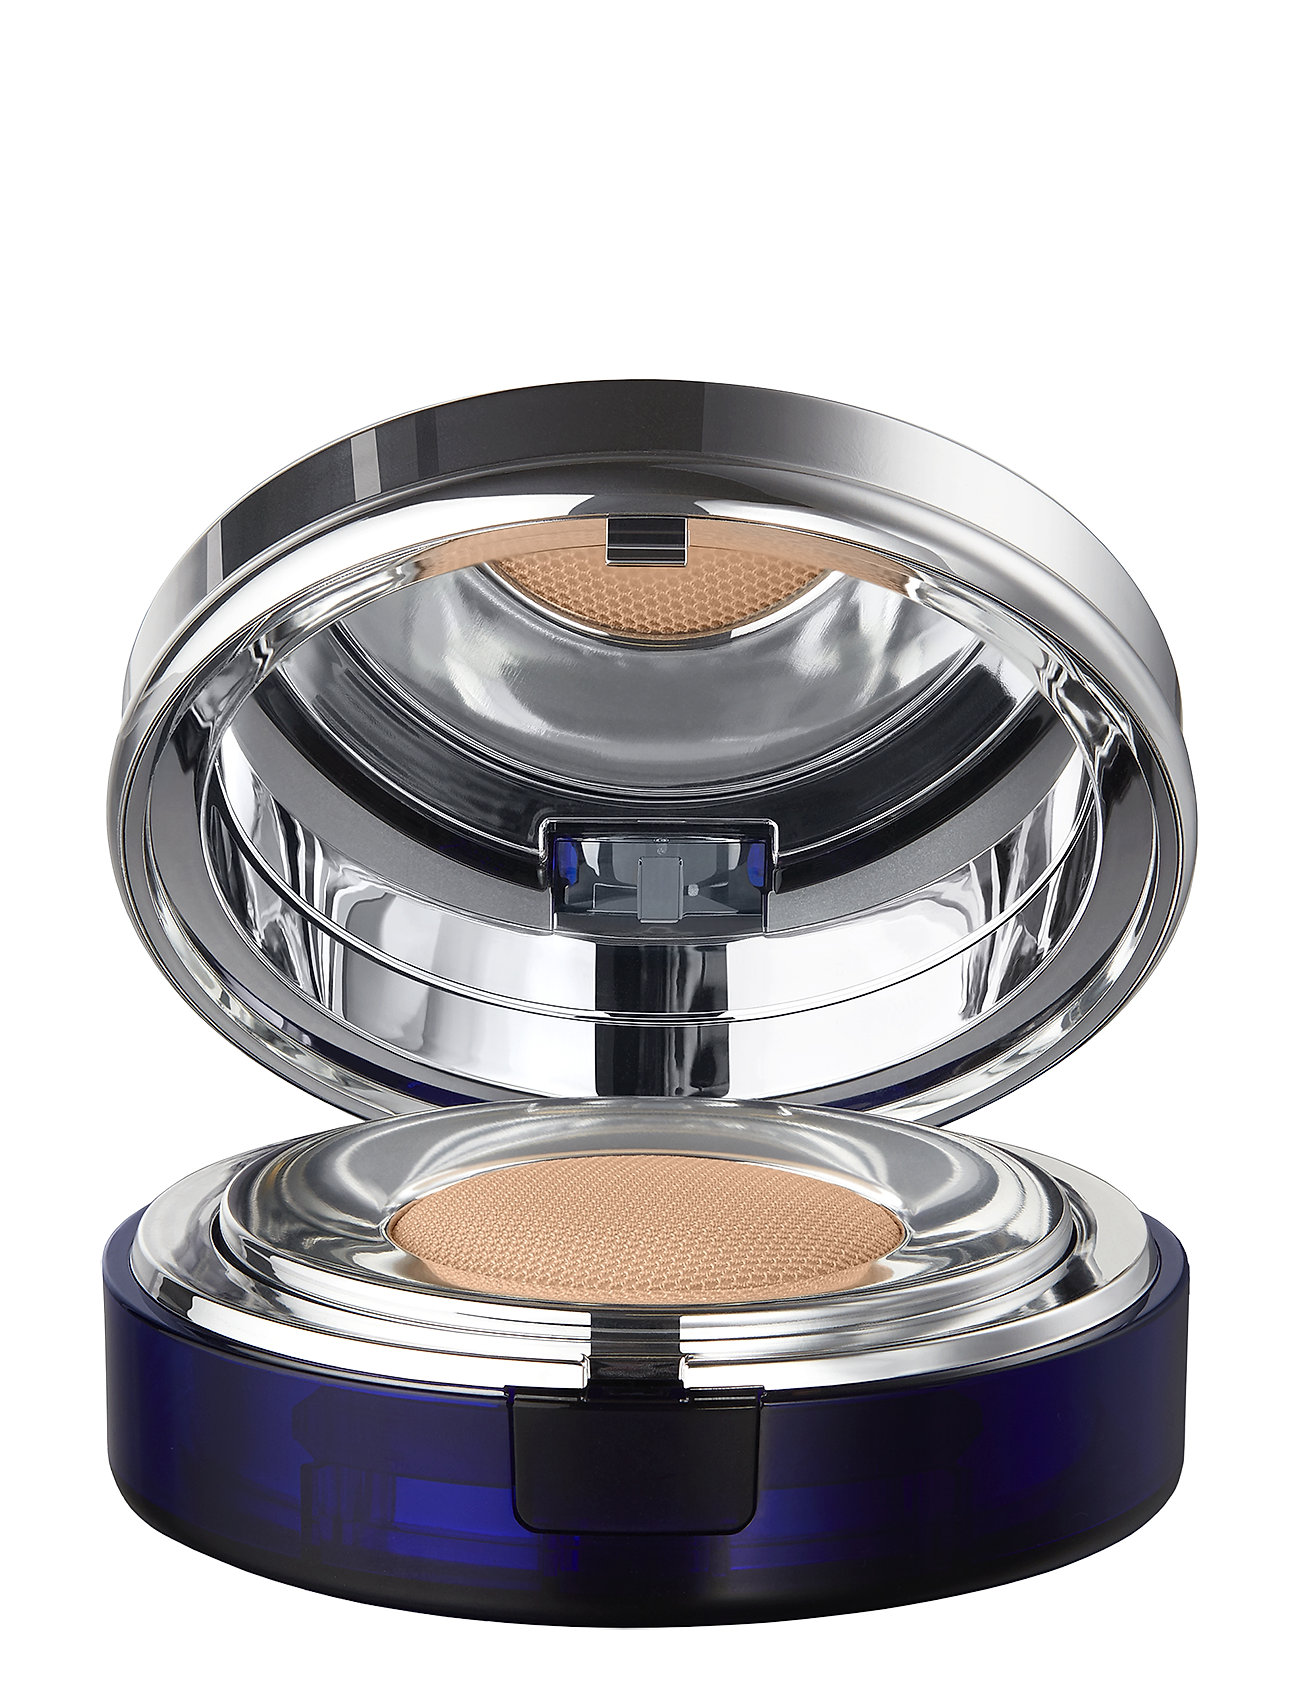 Image of Essence In Foundation H Y Beige Compact Foundation Foundation Makeup La Prairie (3067524563)